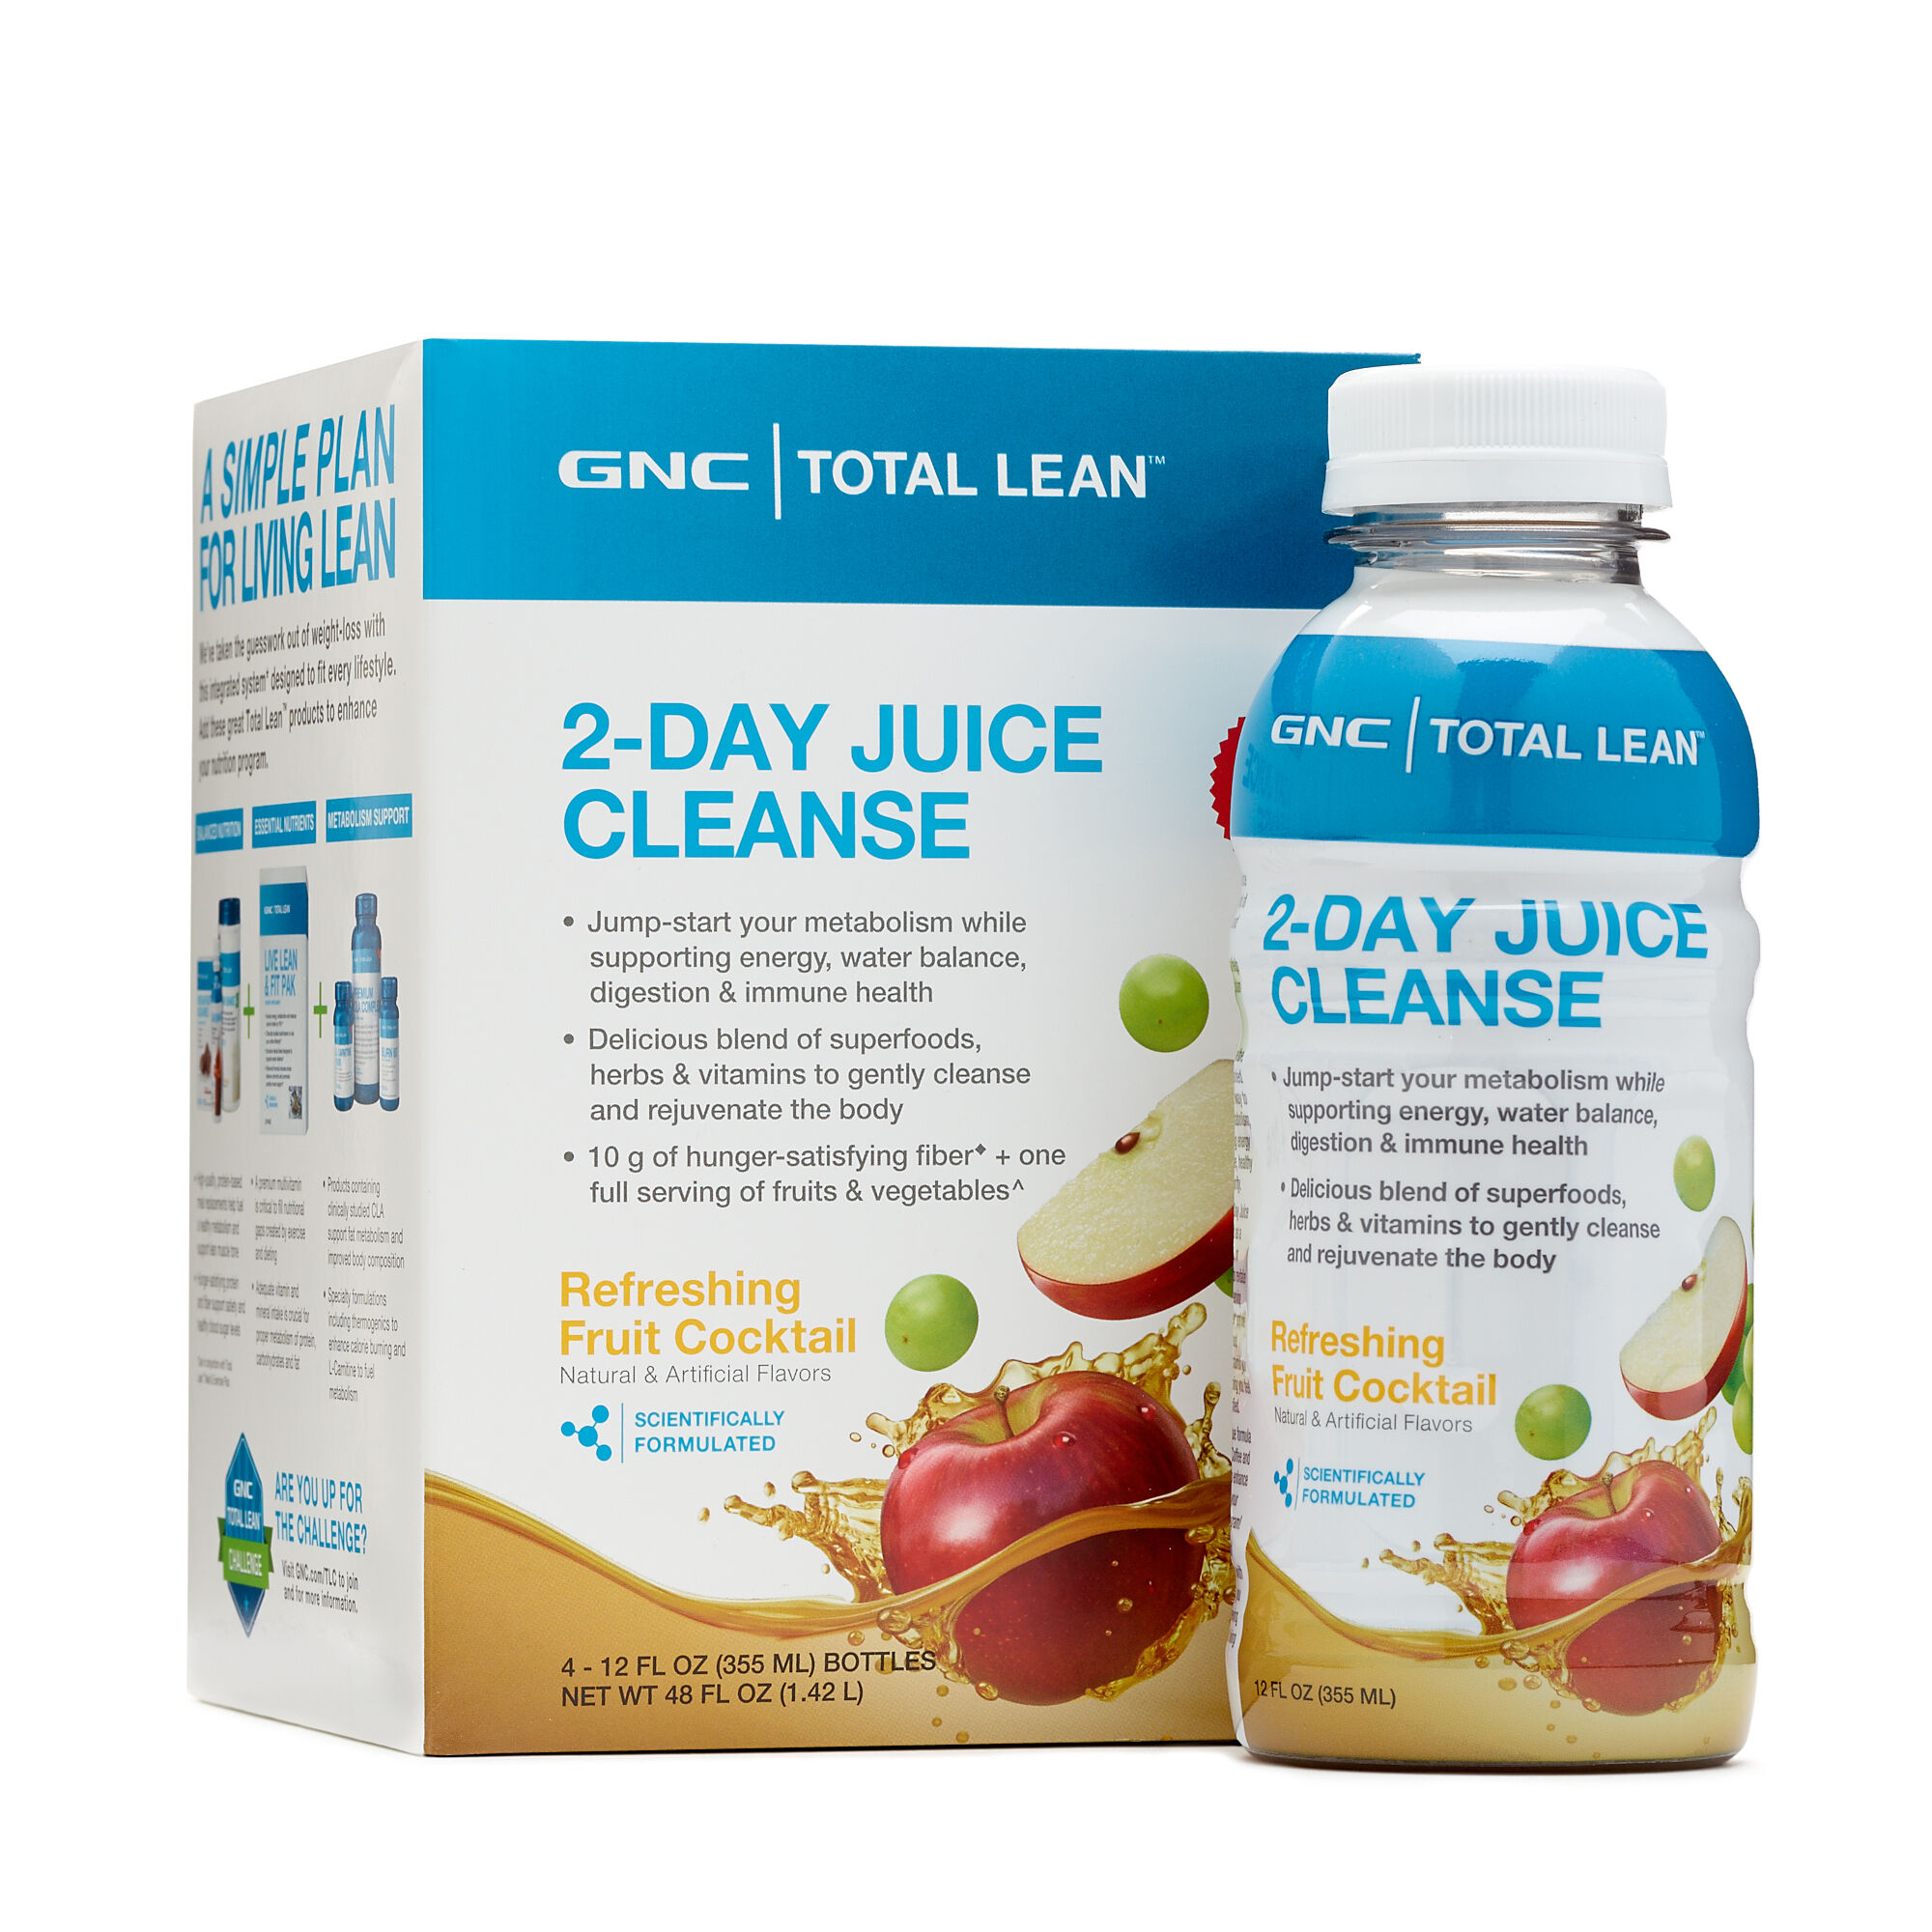 Gnc Total Lean 2 Day Juice Cleanse Refreshing Fruit Cocktail